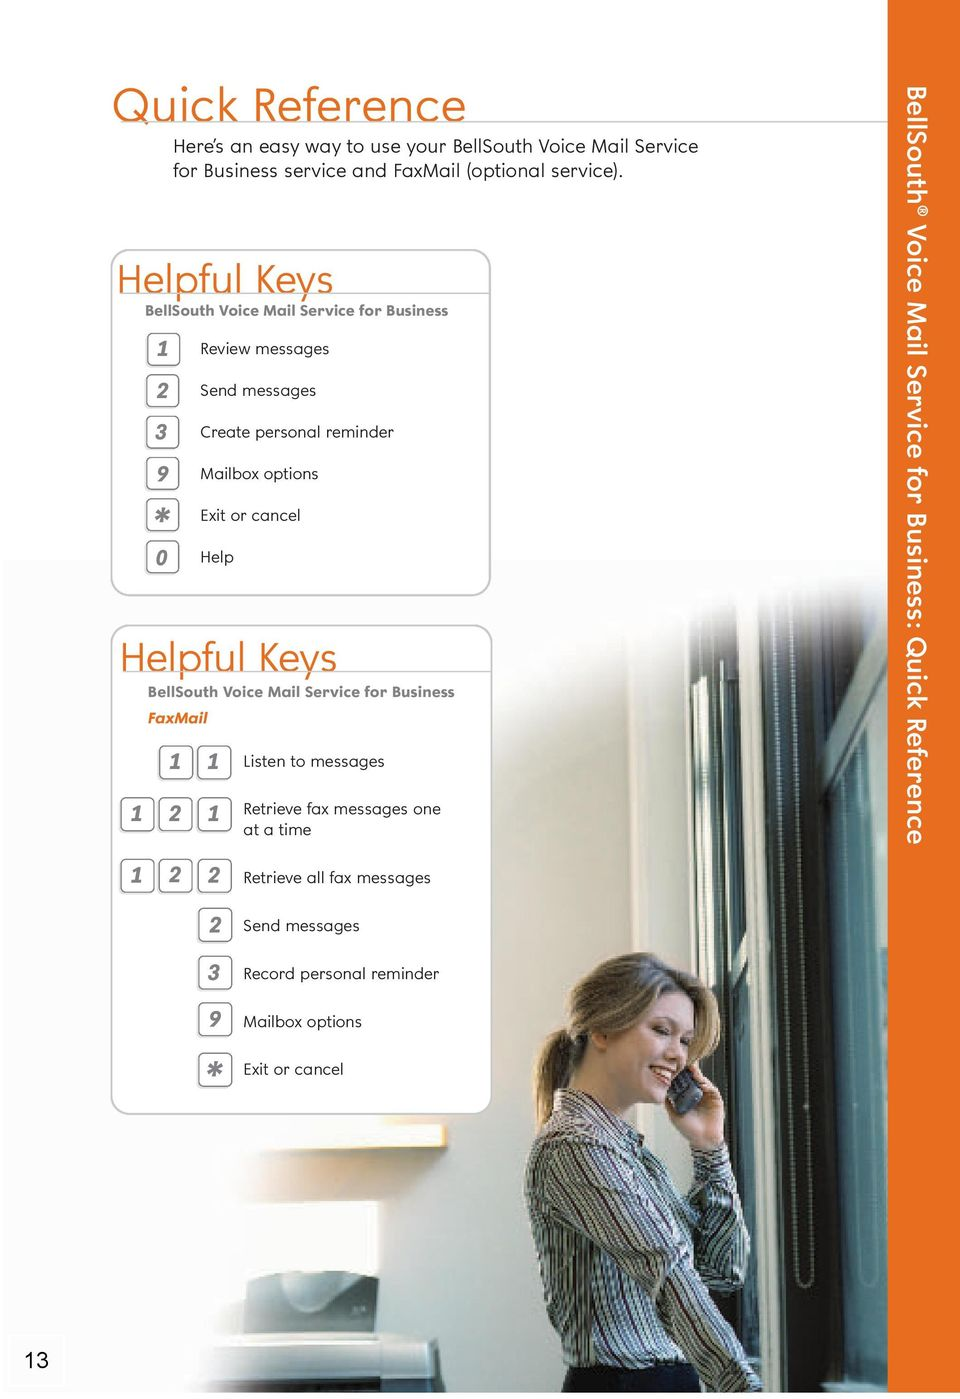 Helpful Keys BellSouth Voice Mail Service for Business Review messages 0 Send messages Create personal reminder Mailbox options Exit or